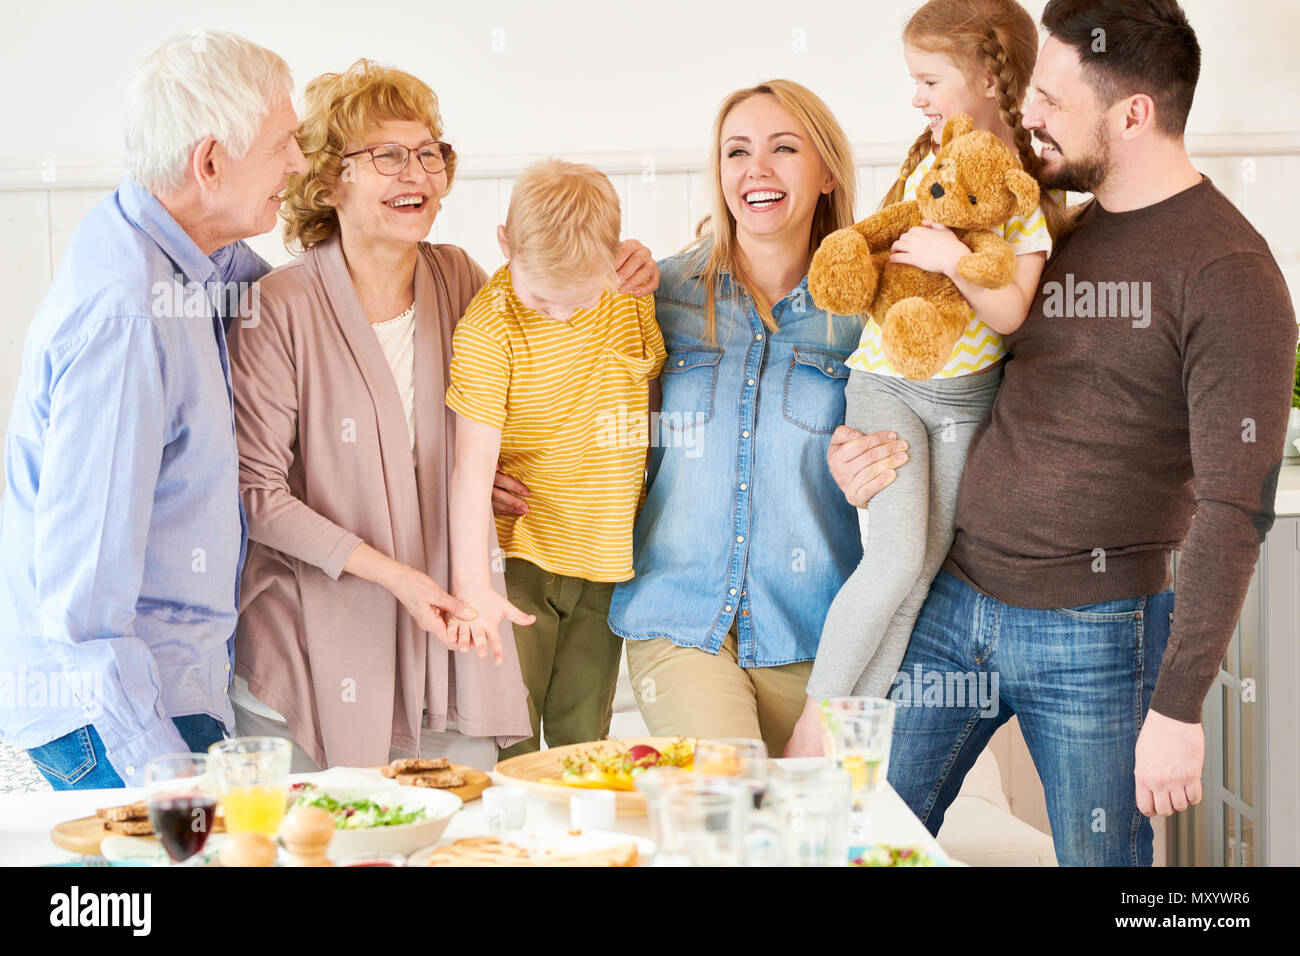 Portrait of carefree two generation family of six posing  at home and smiling happily while  standing at festive dinner table - Stock Image